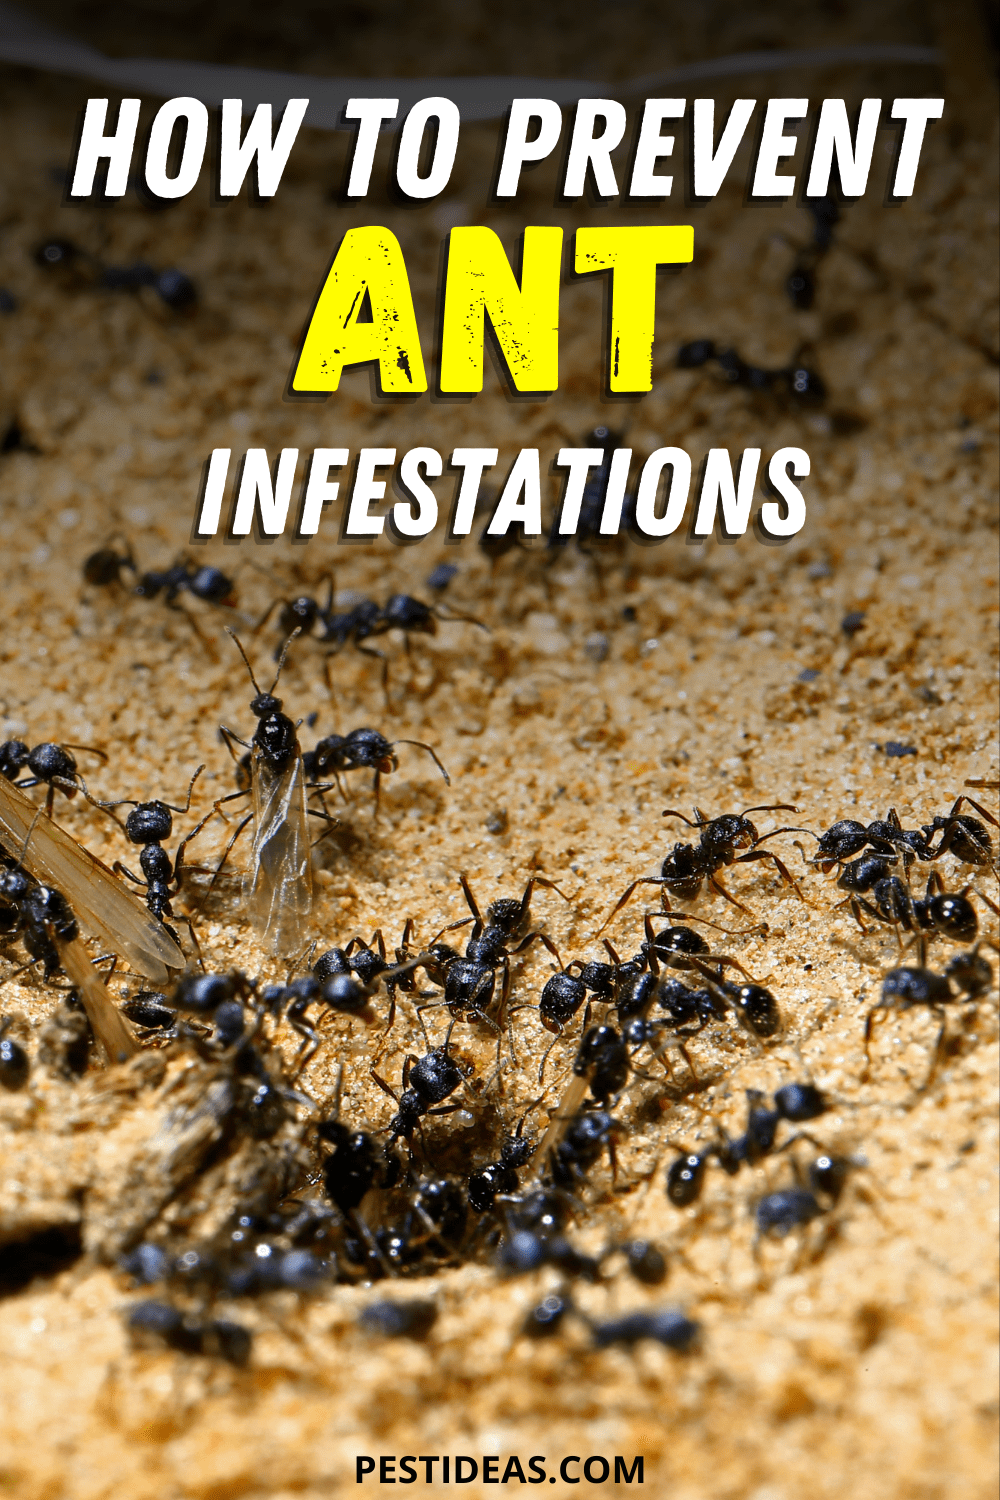 How to Prevent Ant Infesations